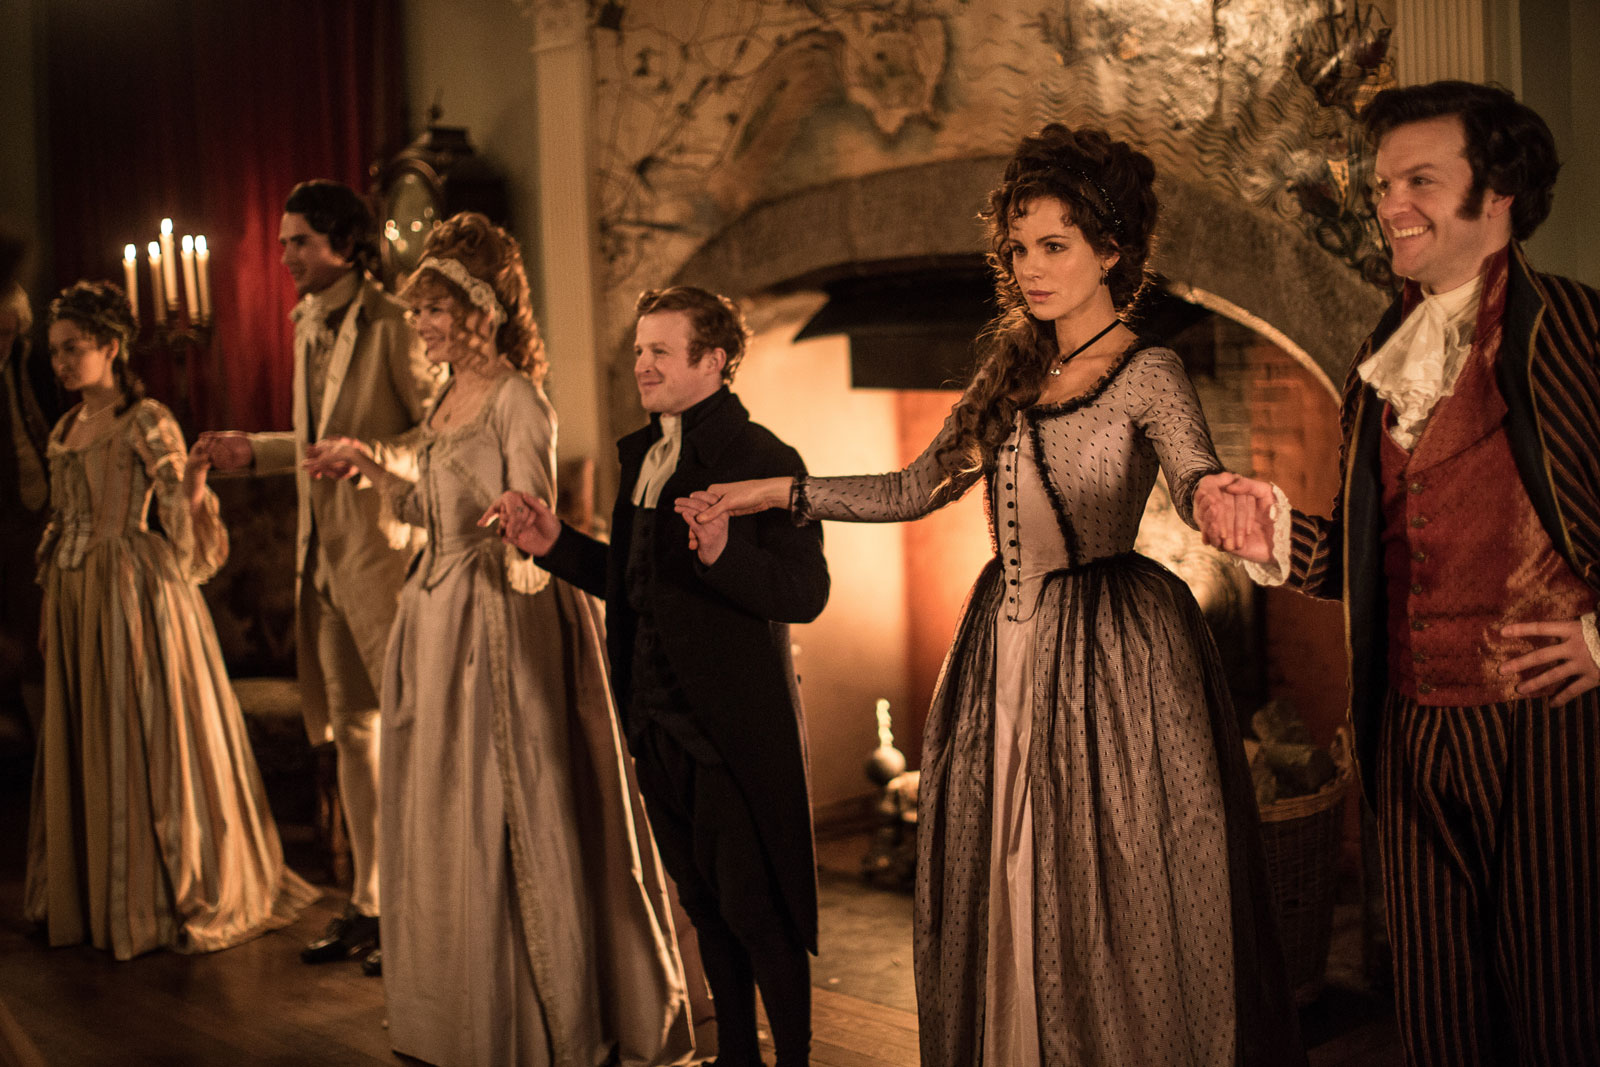 Kate Beckinsale as Lady Susan Vernon (right) and Tom Bennett as Sir James Martin (far right) in Whit Stillman's <em>Love & Friendship</em>, 2016